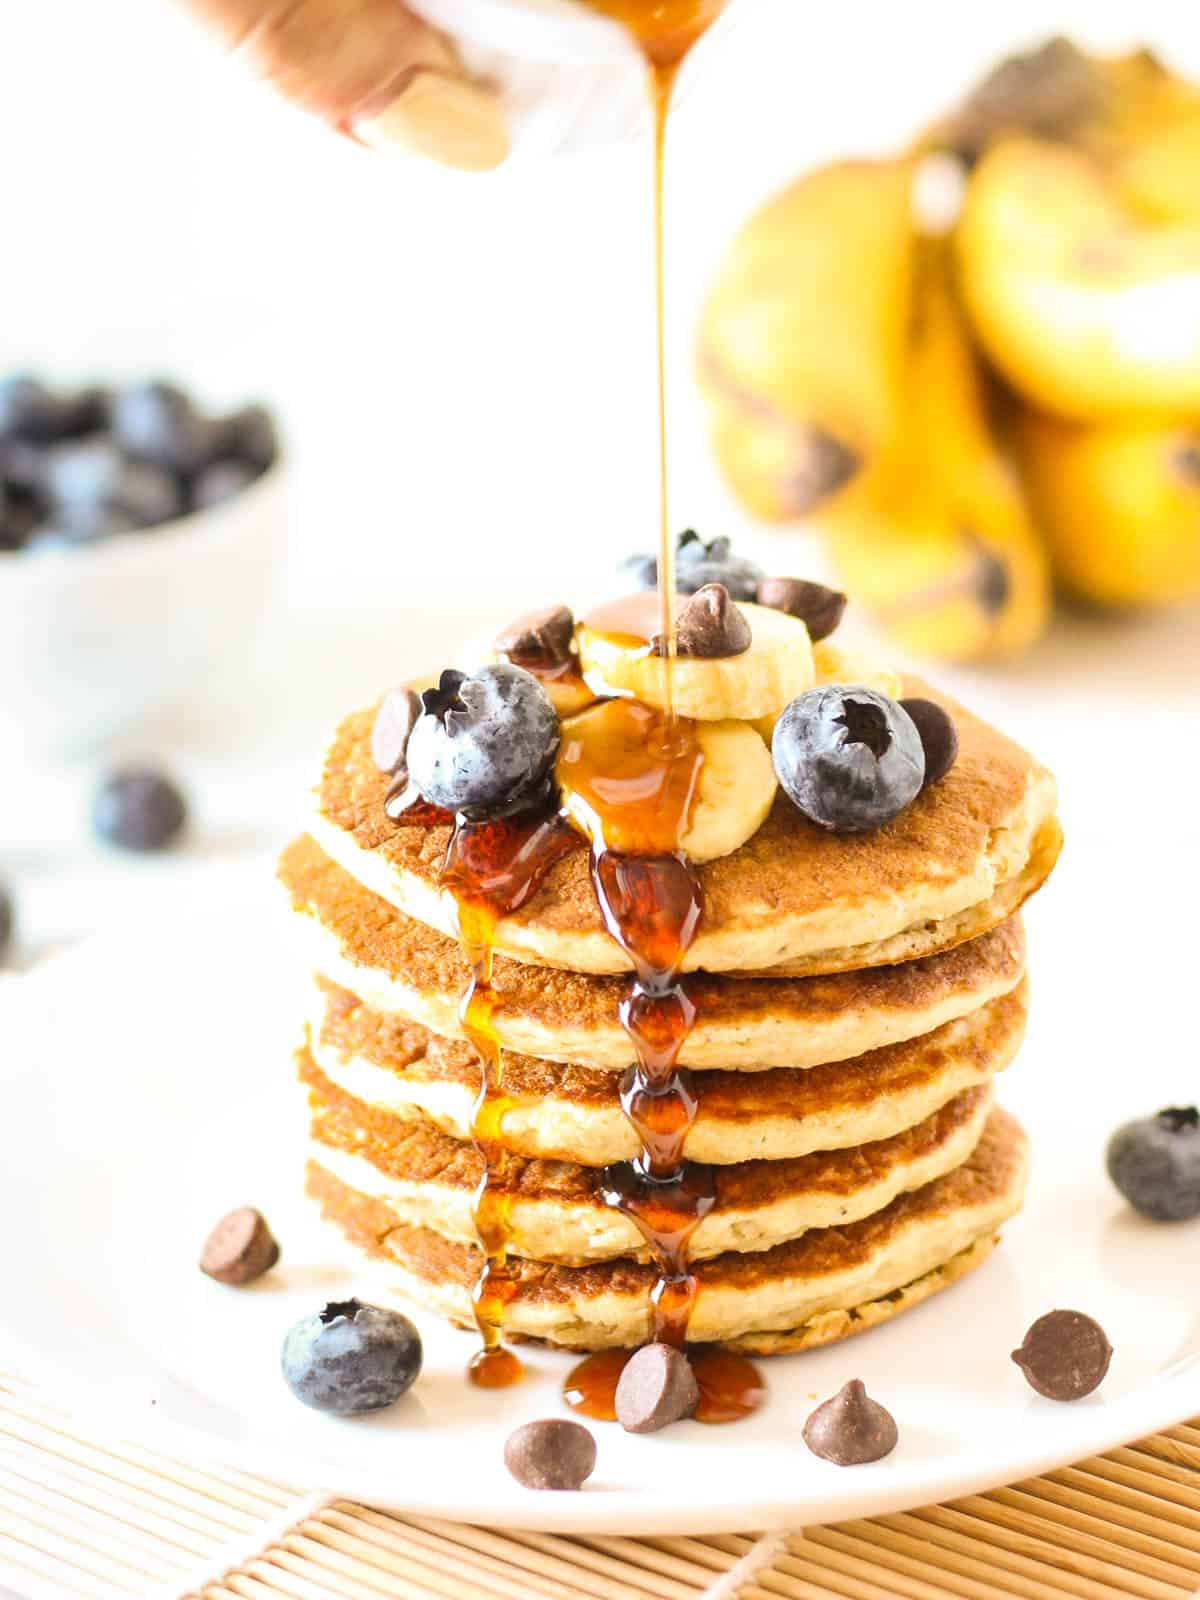 Pouring maple syrup on a stack of banana oatmeal pancakes.